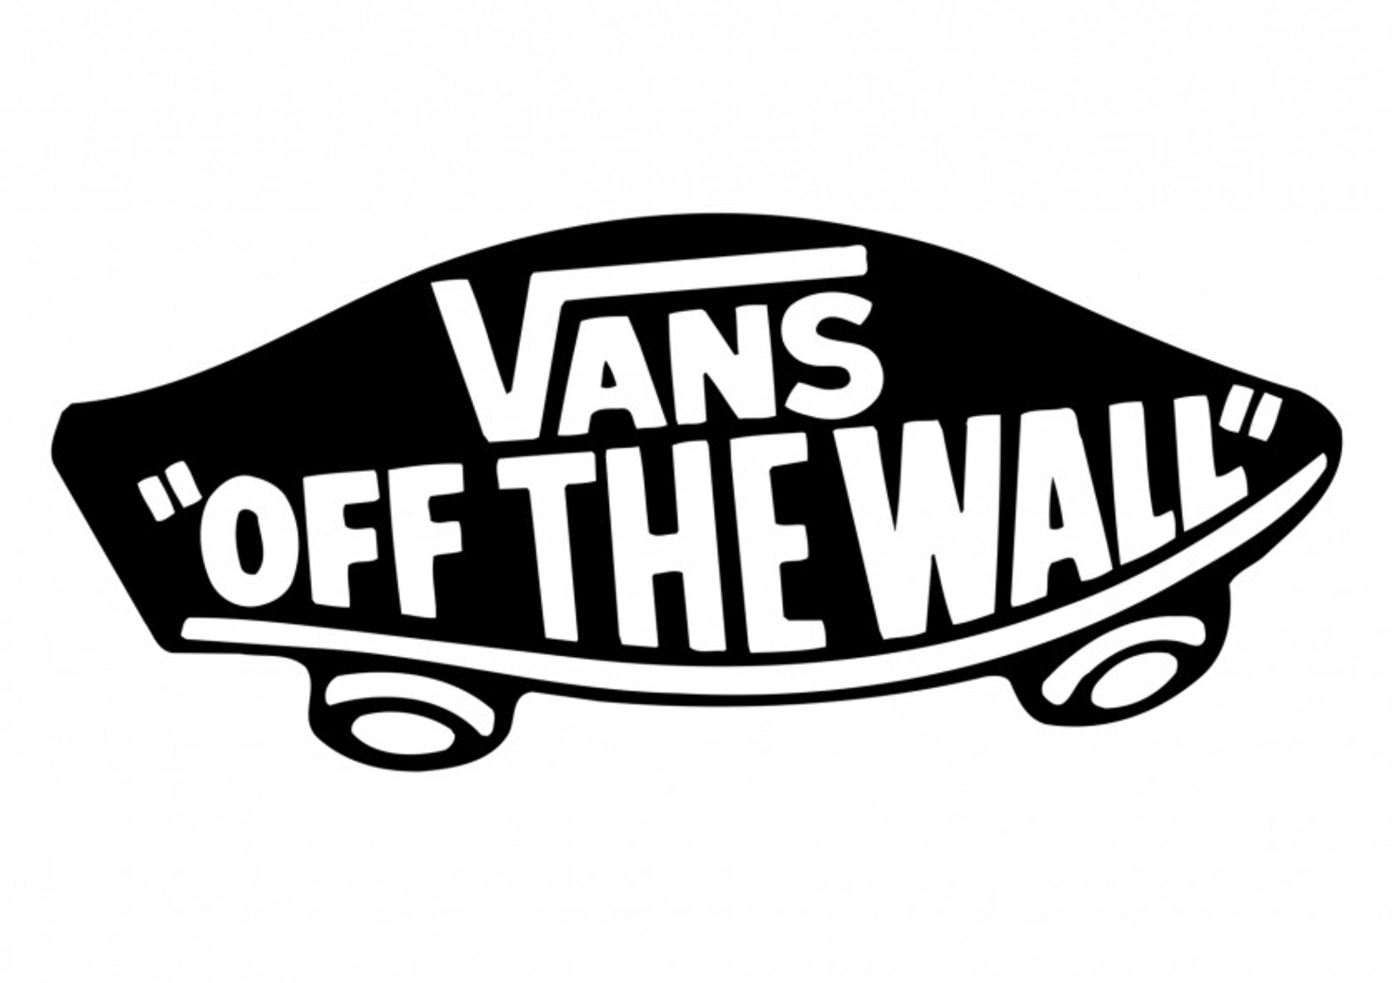 #FactsFriday: A Brief History of Vans